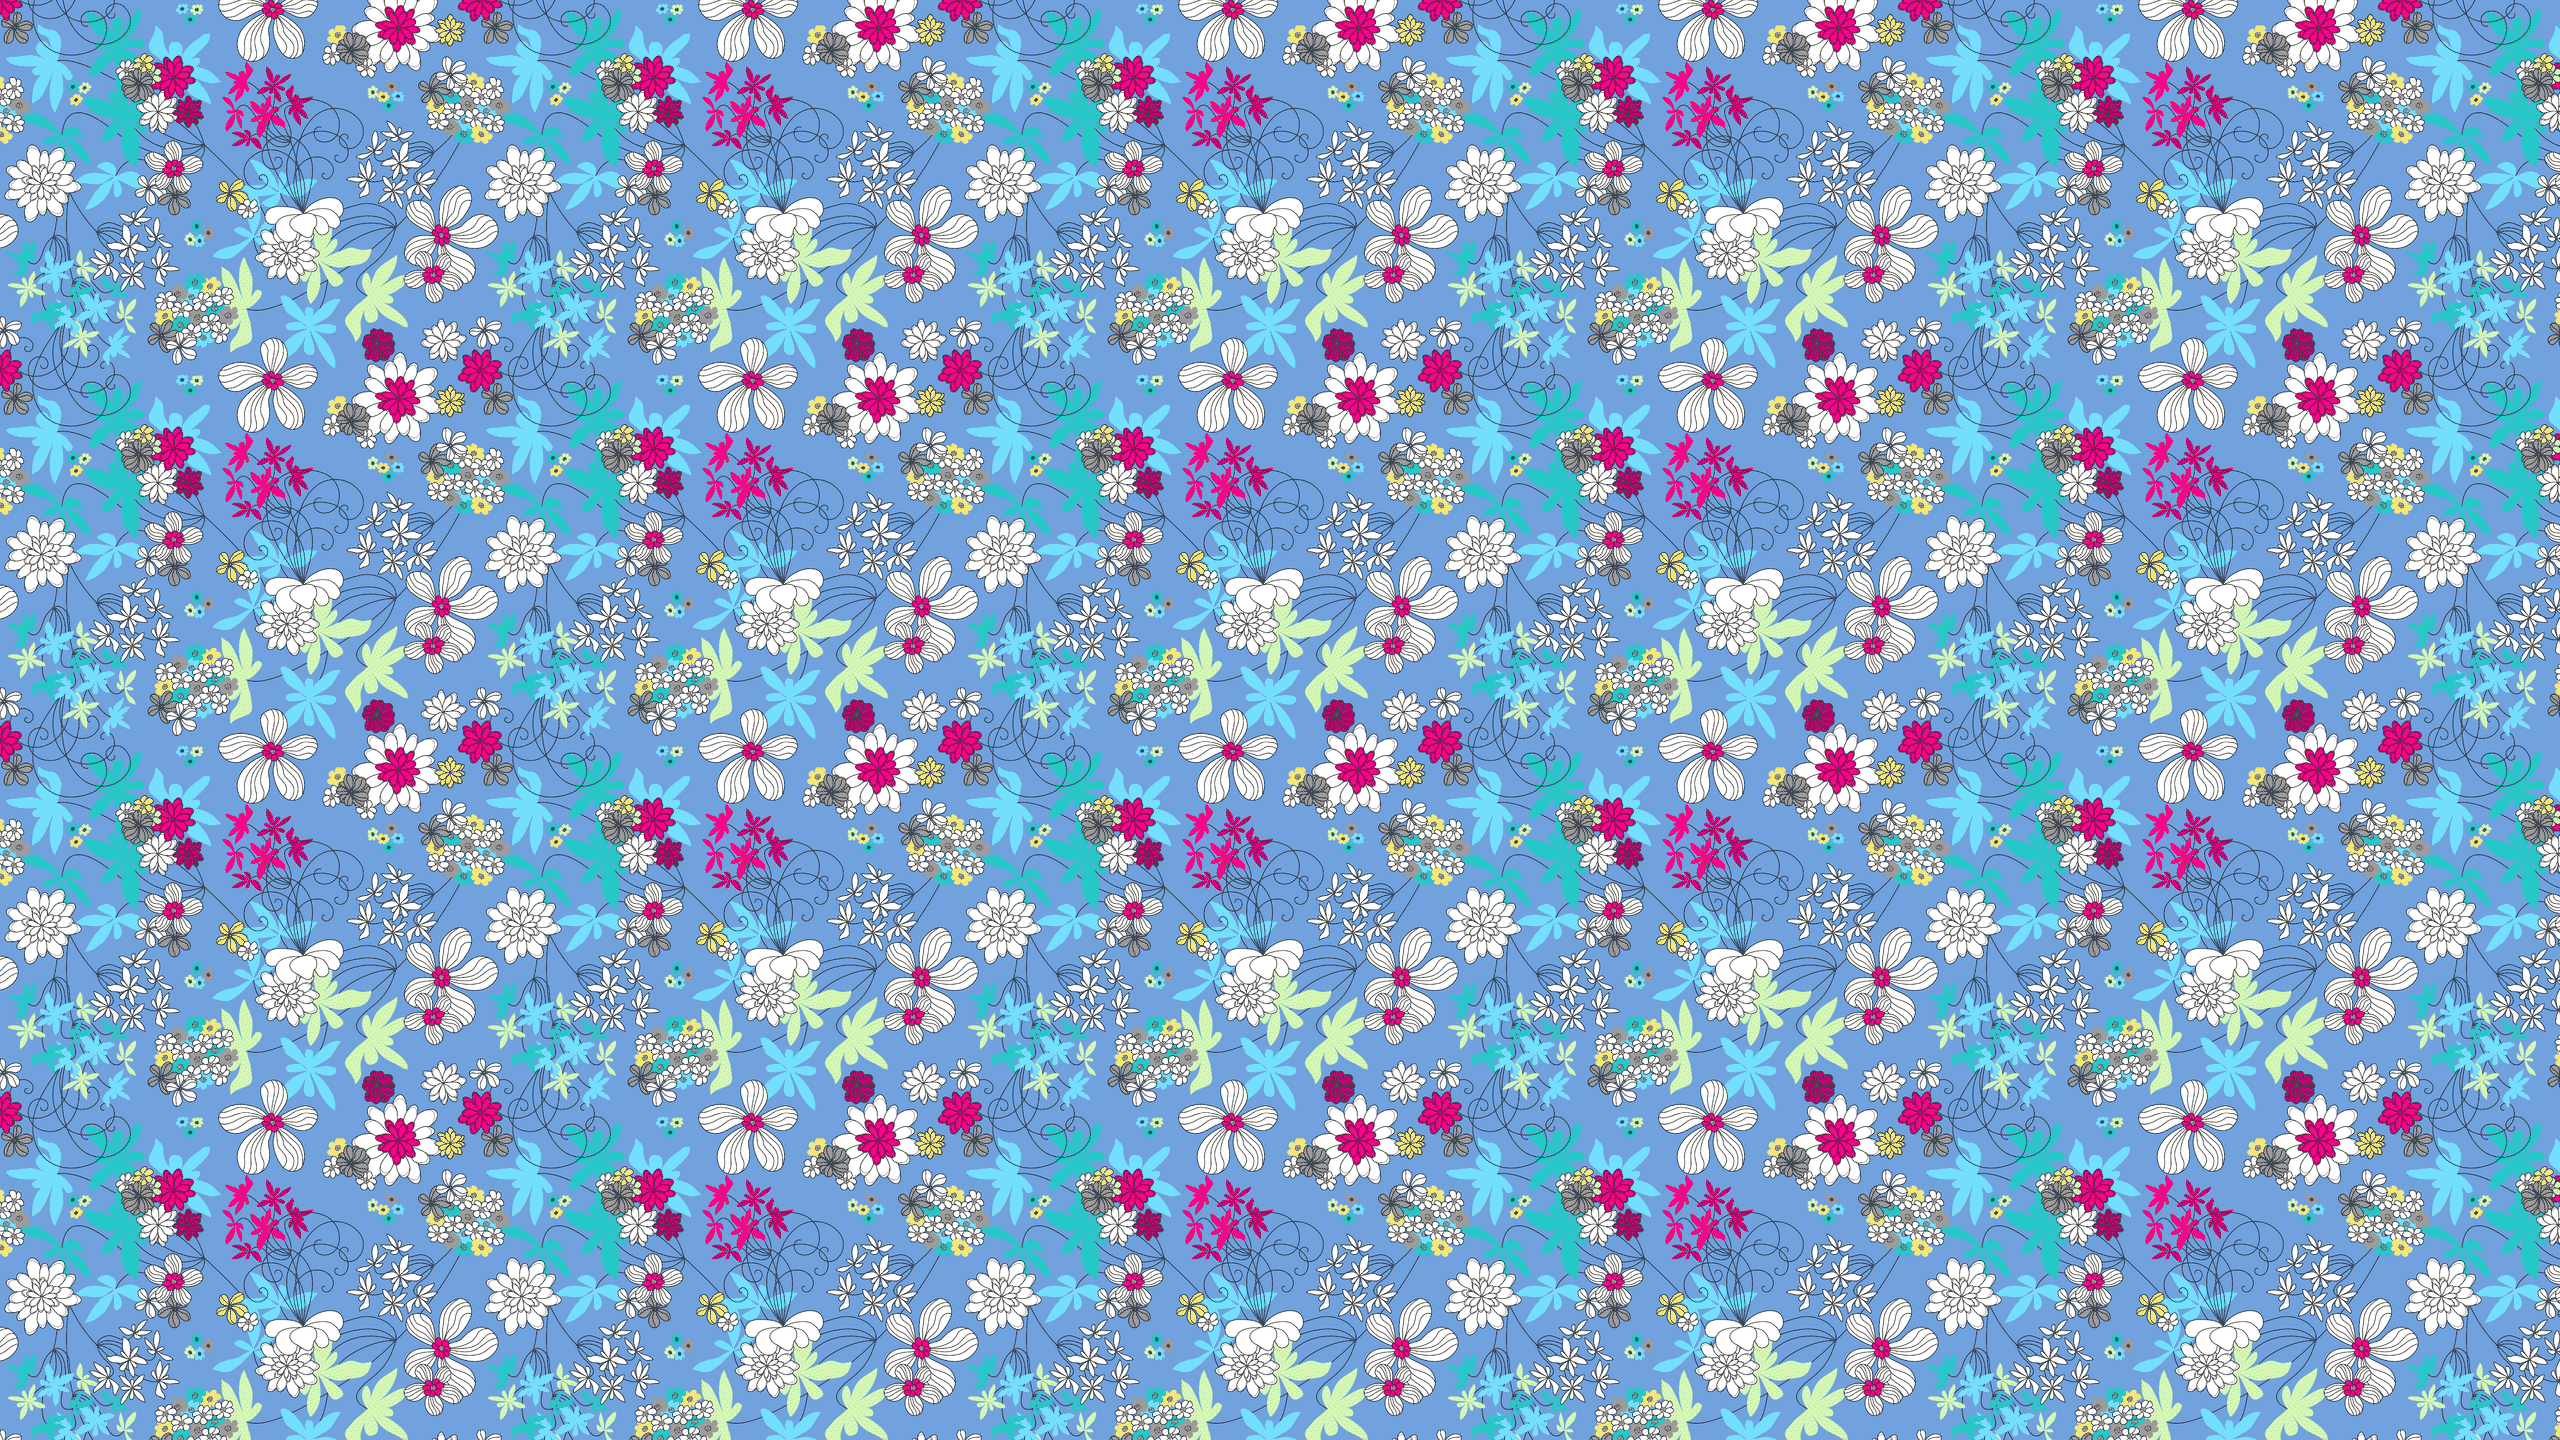 this Cute Flowers Desktop Wallpaper is easy Just save the wallpaper 2560x1440